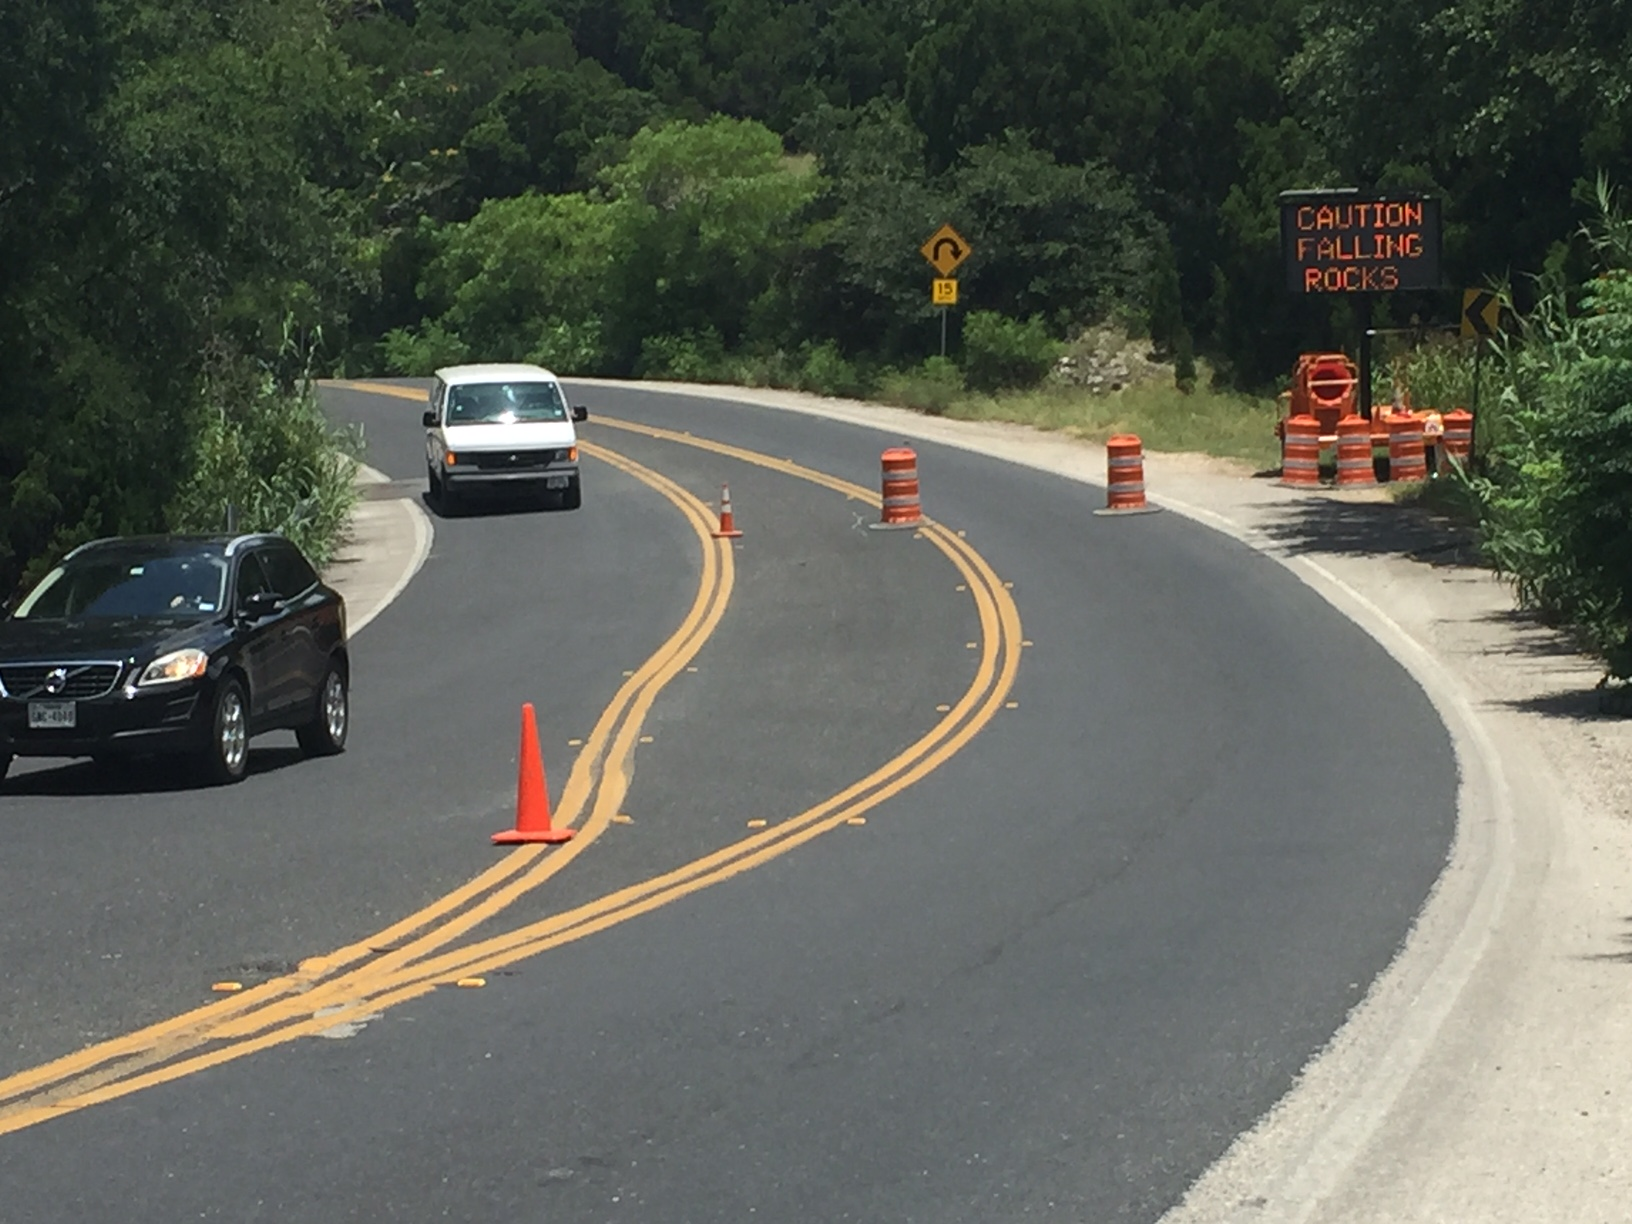 Redbud Trail construction underway to keep drivers safe from falling rocks_298623